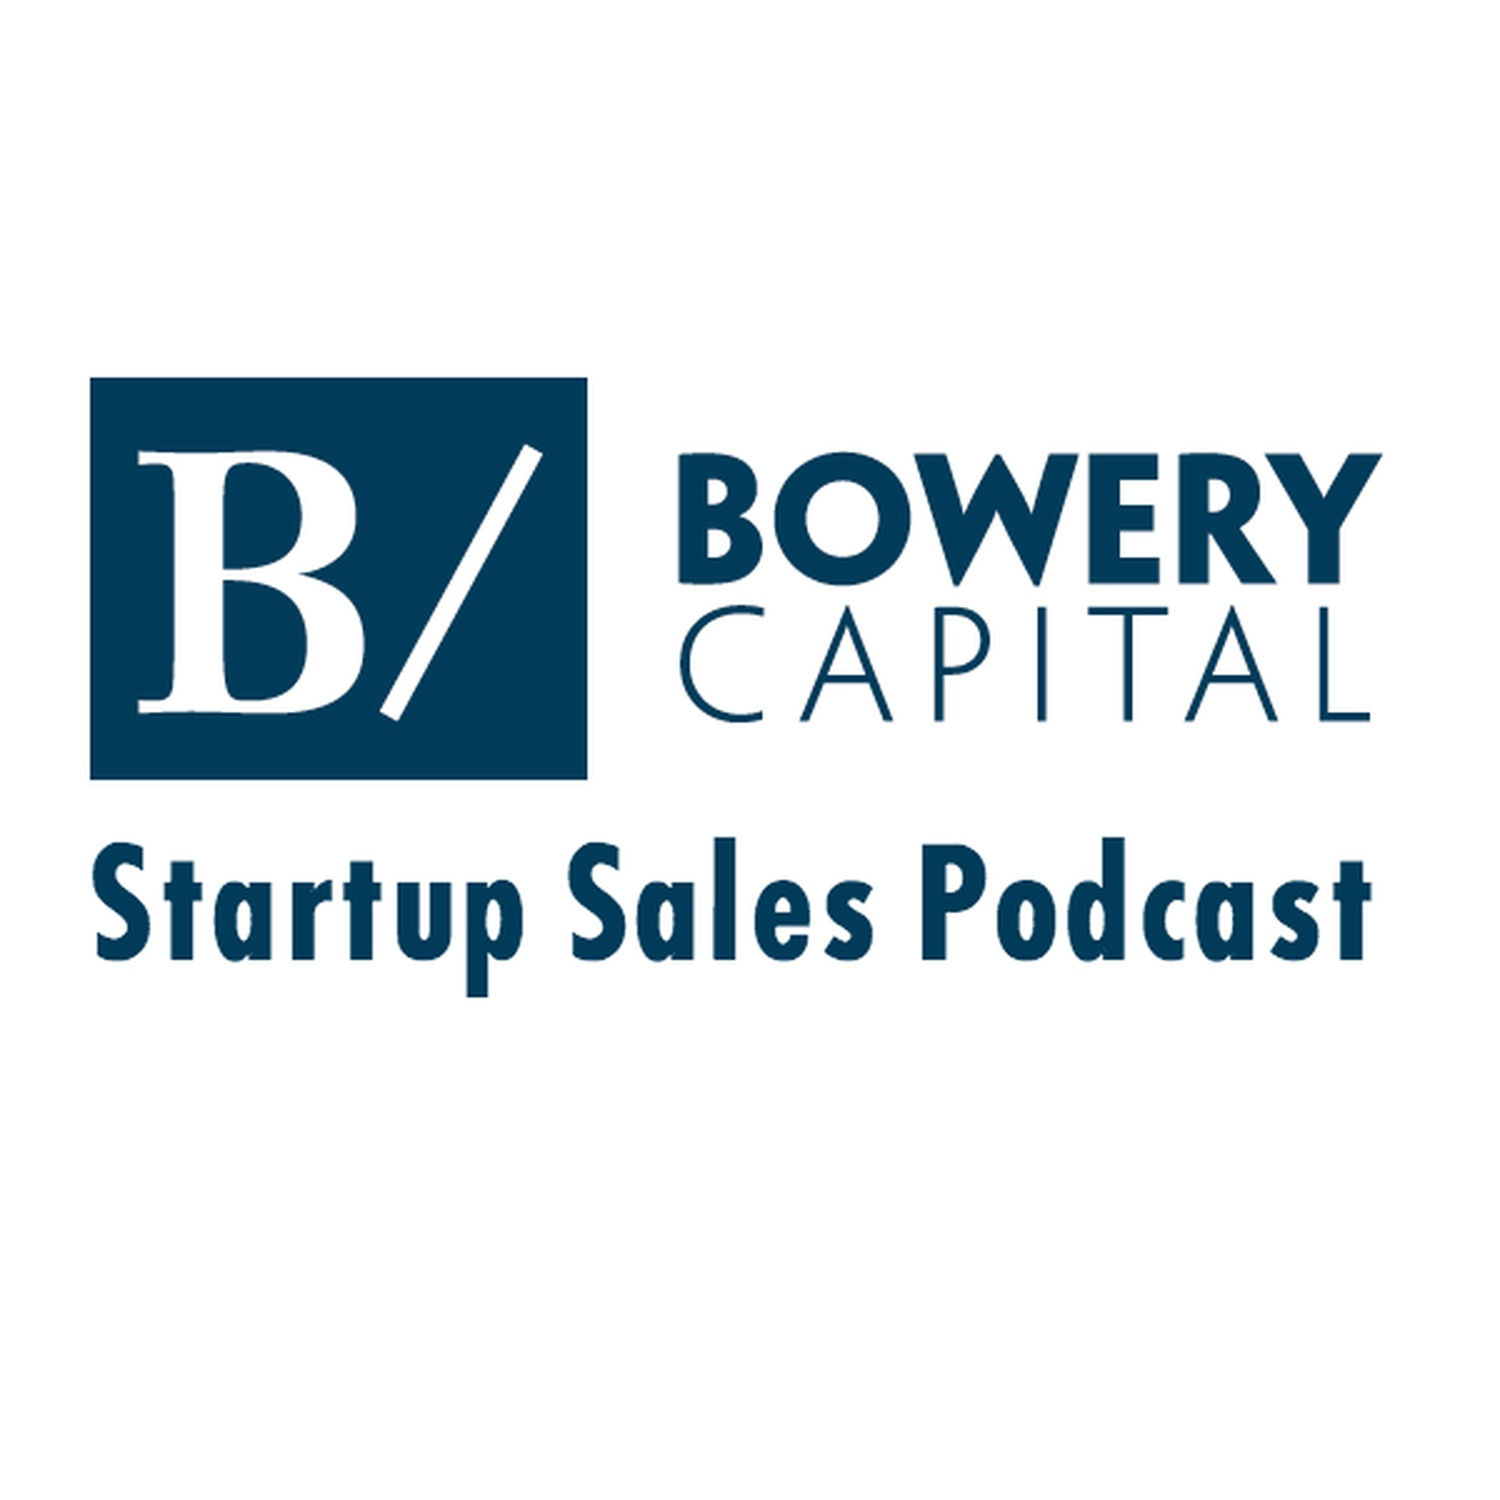 Bowery Capital Startup Sales Podcasts